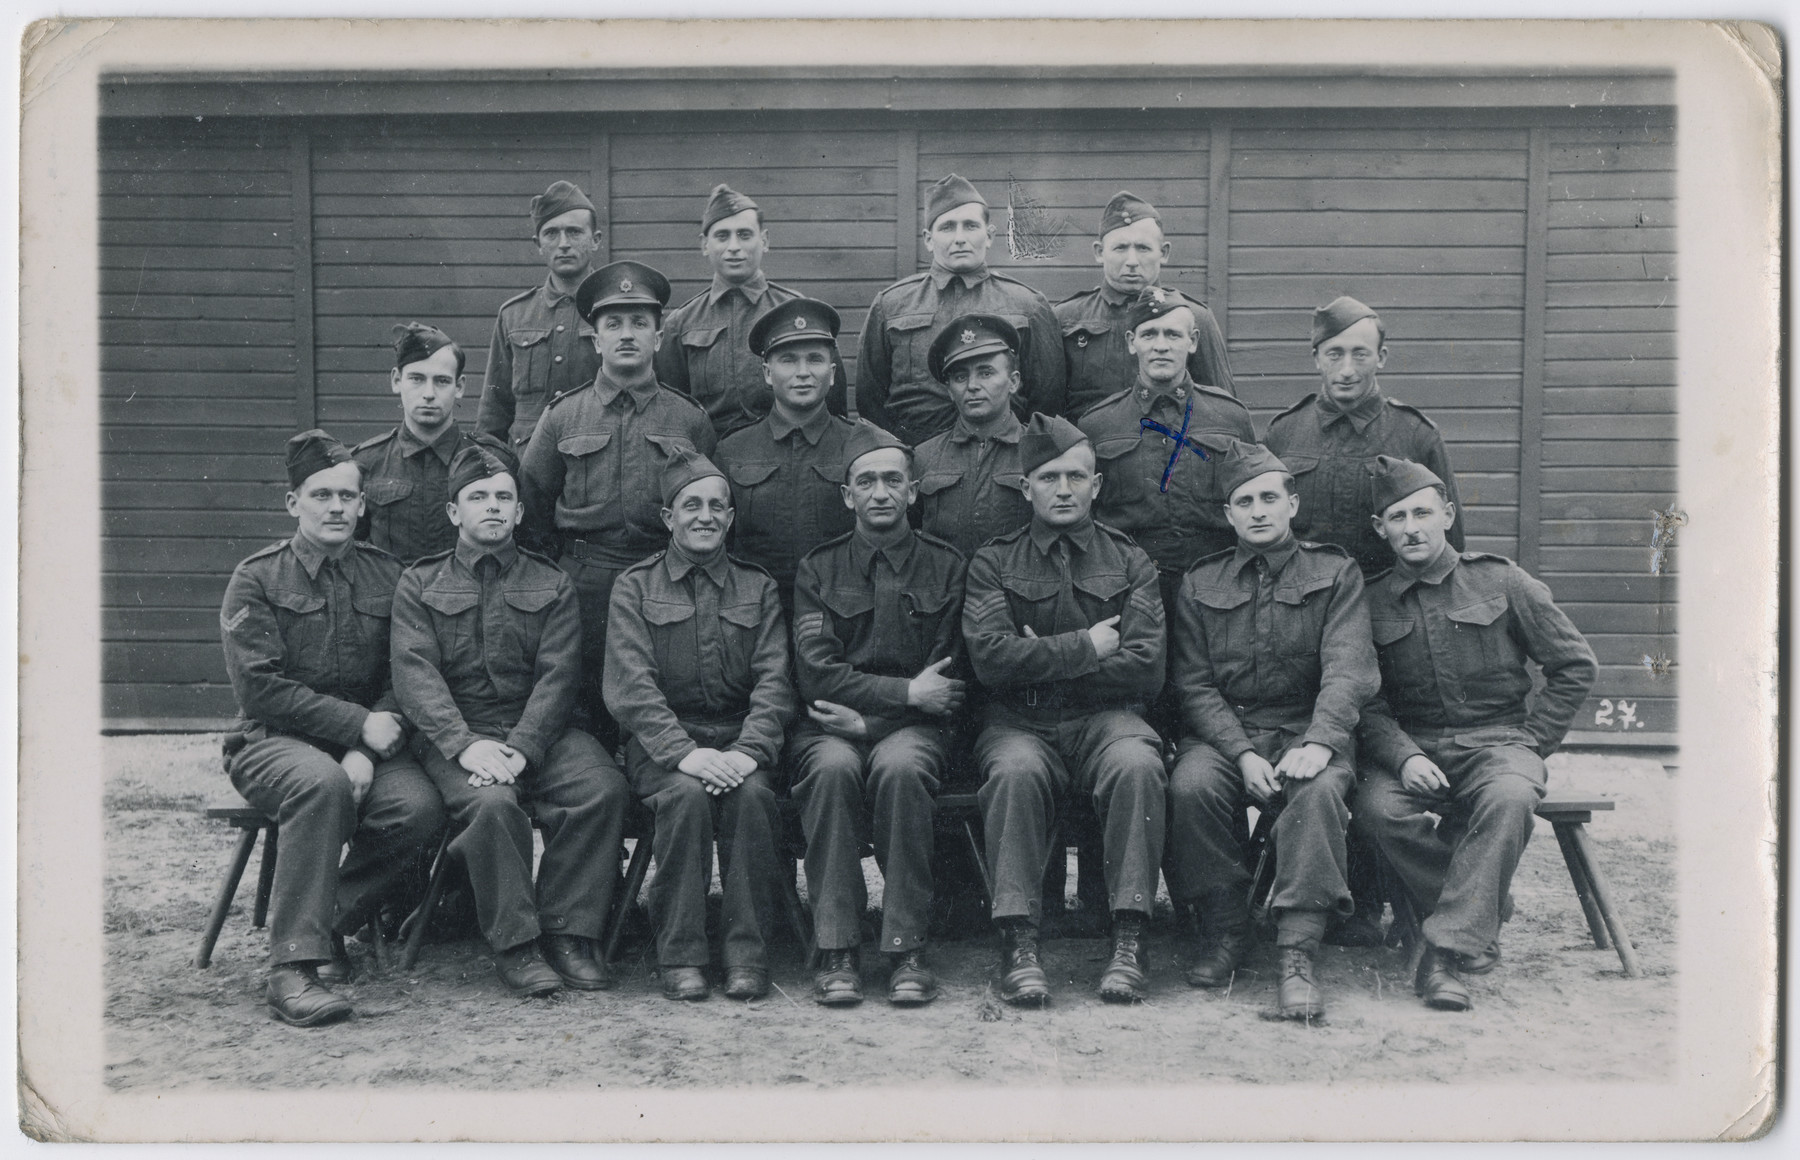 Group portrait of captured British soldiers in Stalag VIIIB in Lamsdorf.  Among those pictured is Erich de-Beer, a German Jew who immigrated to Palestine, joined the British army and was taken prisoner on the Isle of Crete.